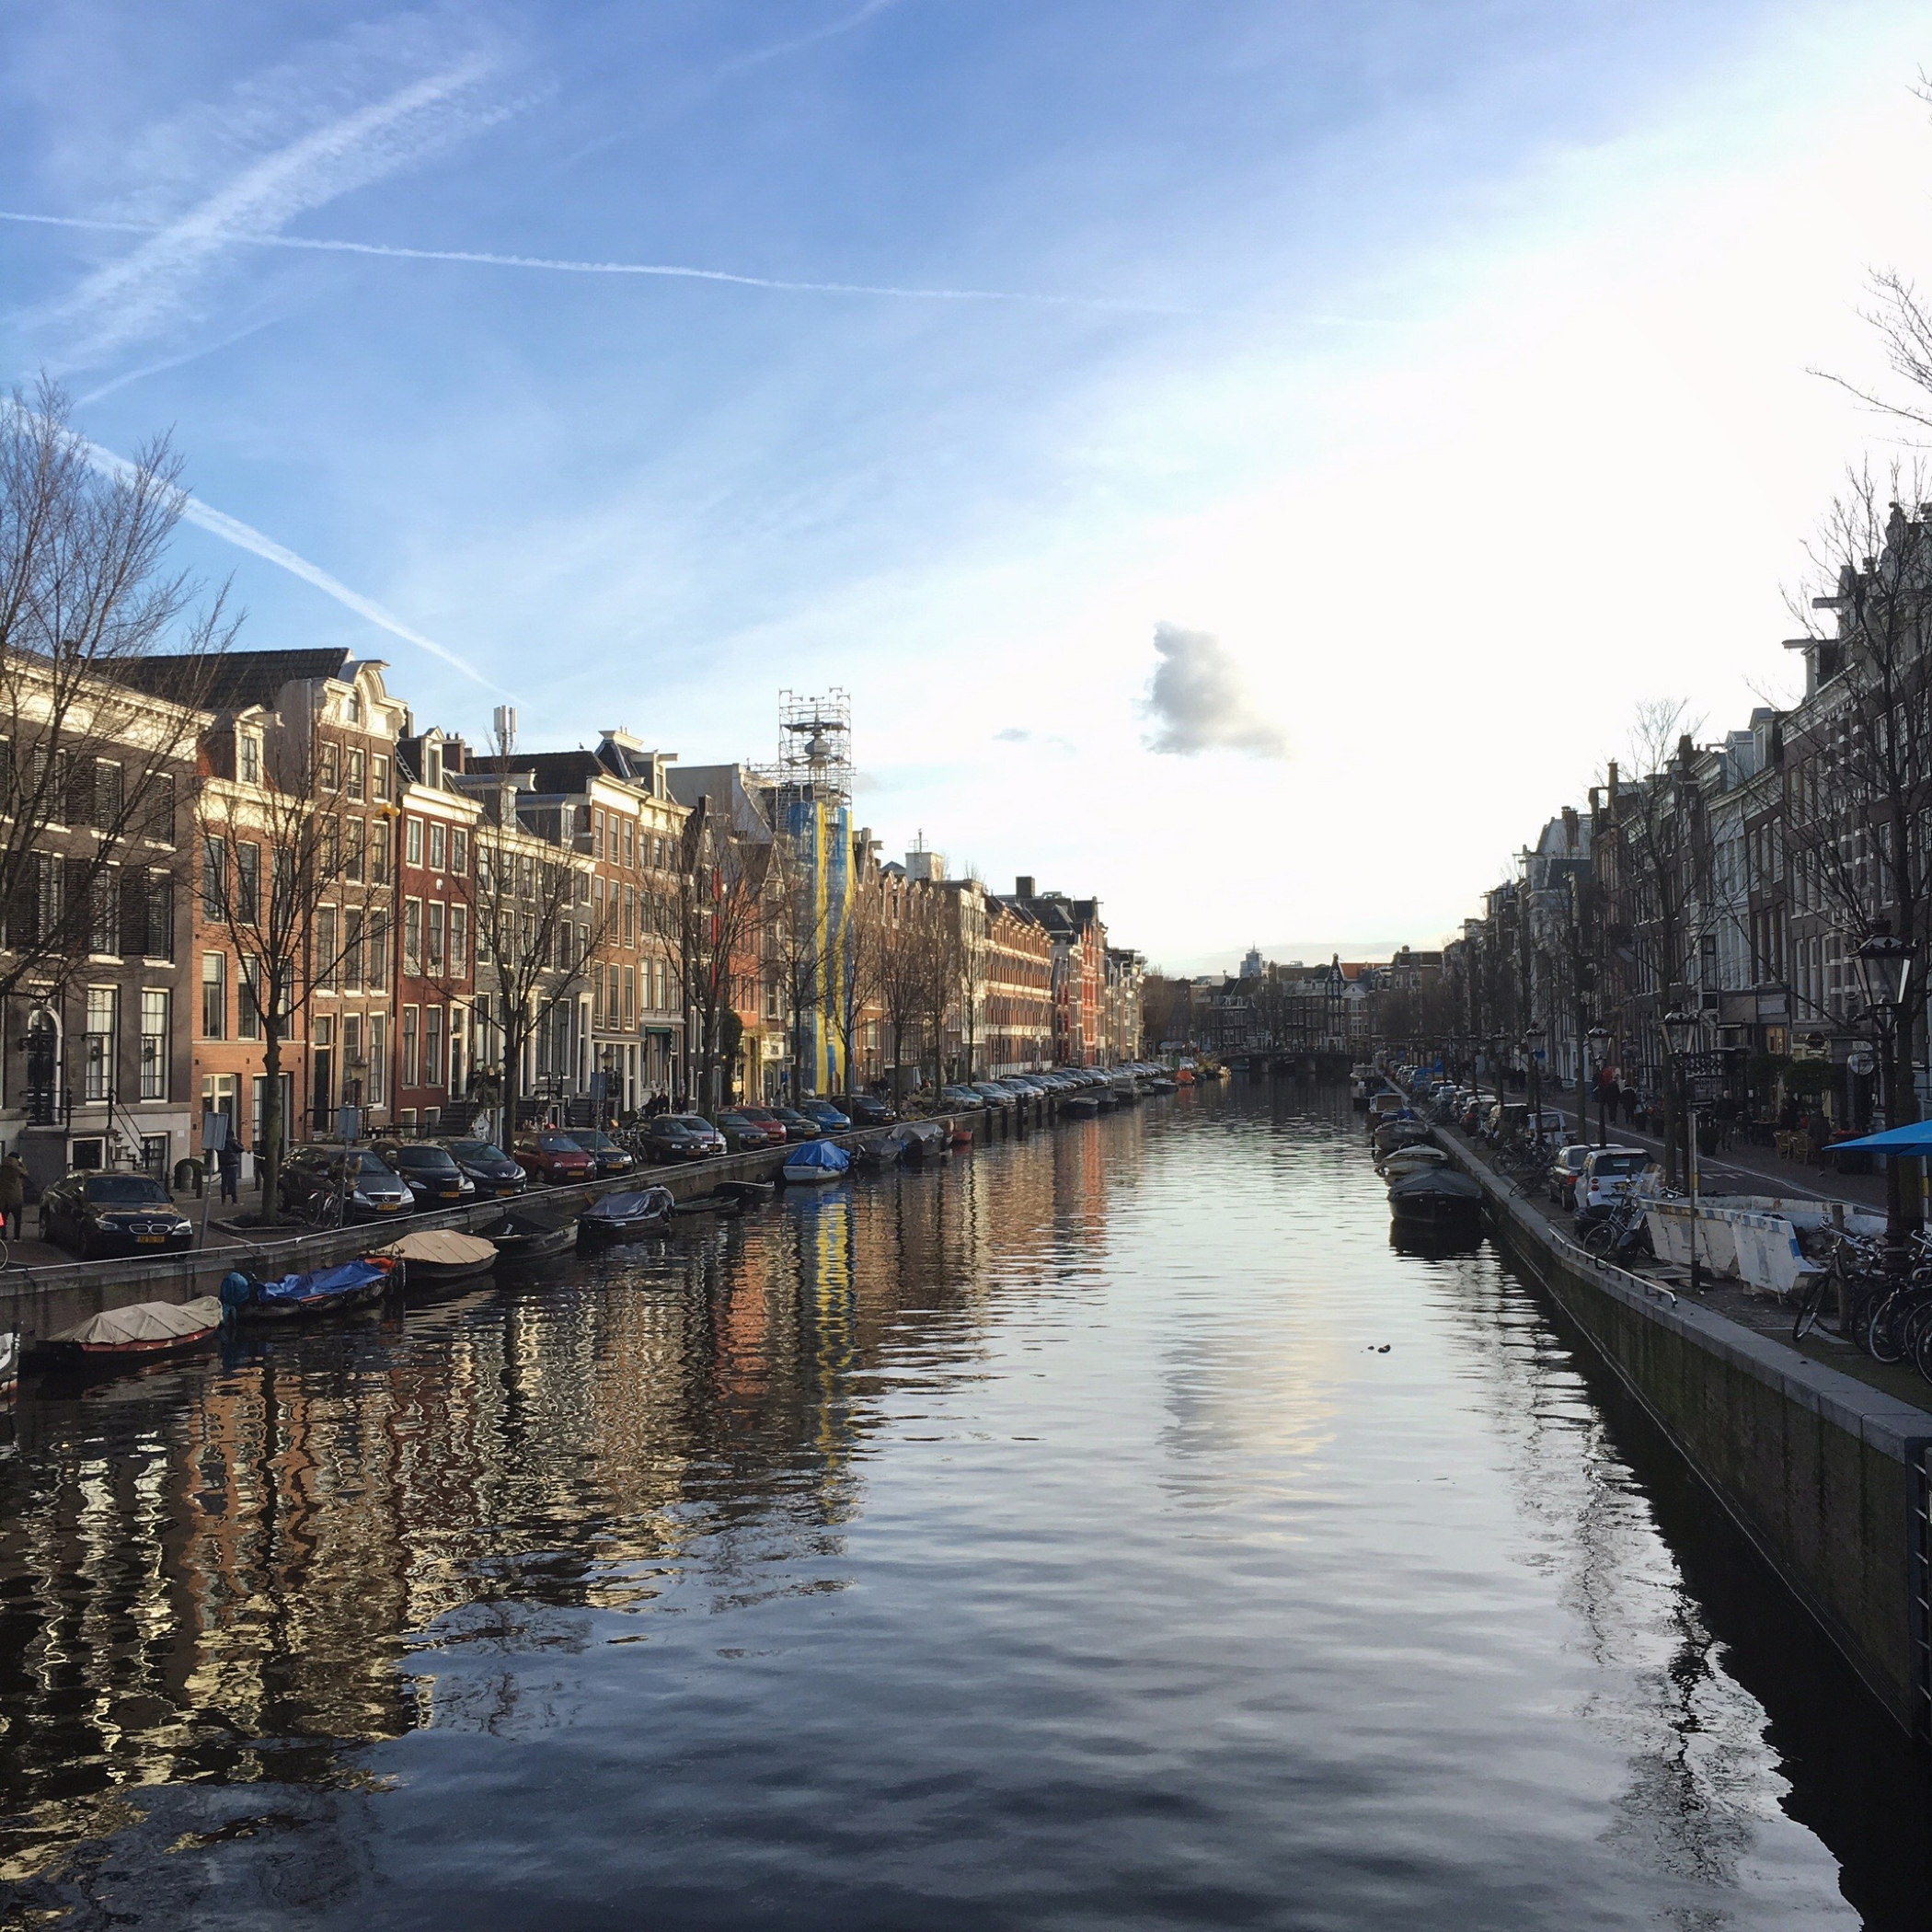 One favorite Instagram 2015 photo from Amsterdam